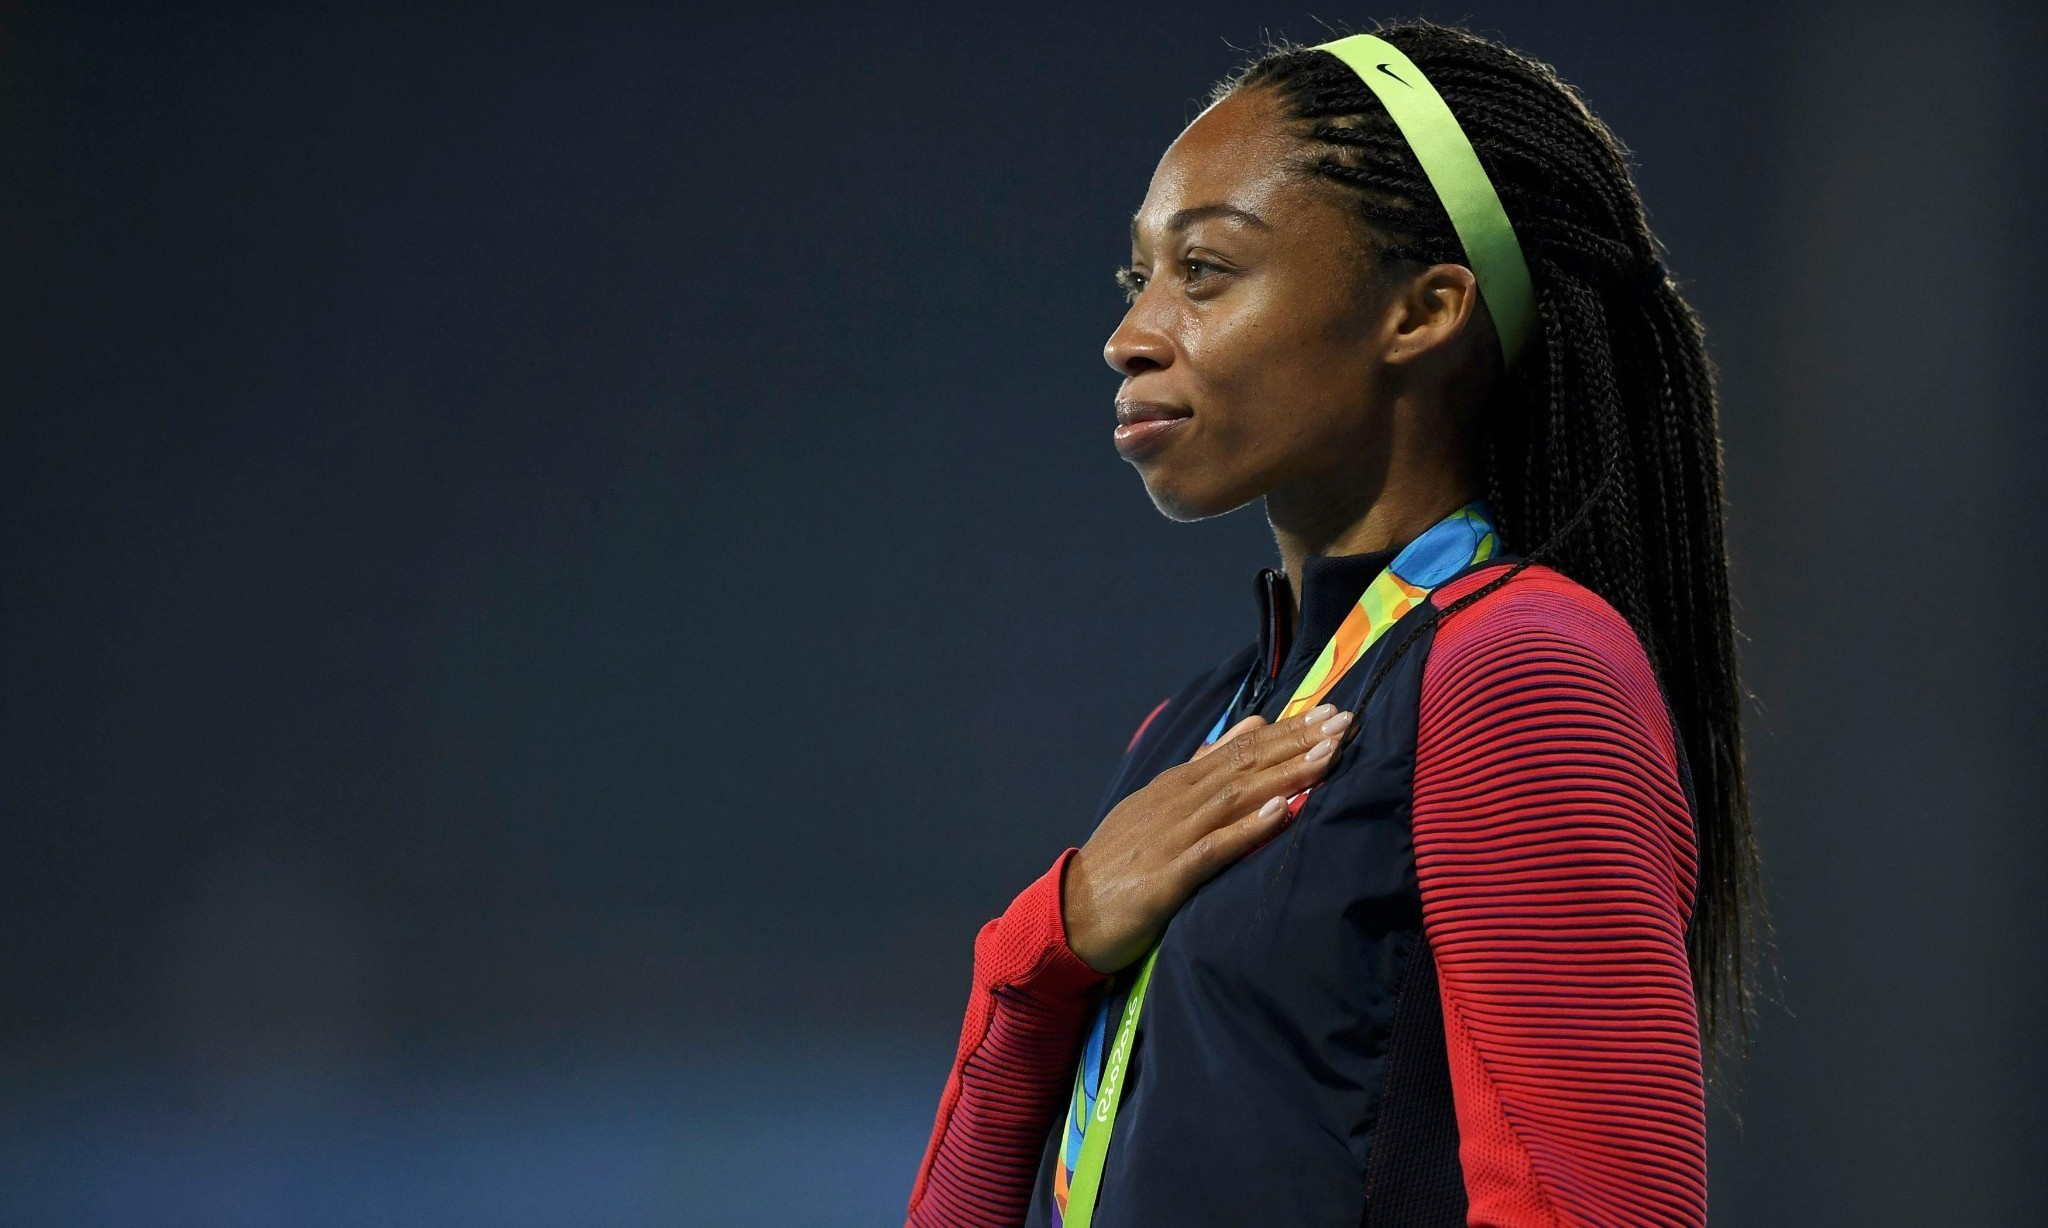 Glittering Allyson Felix signs off from Rio with another golden moment